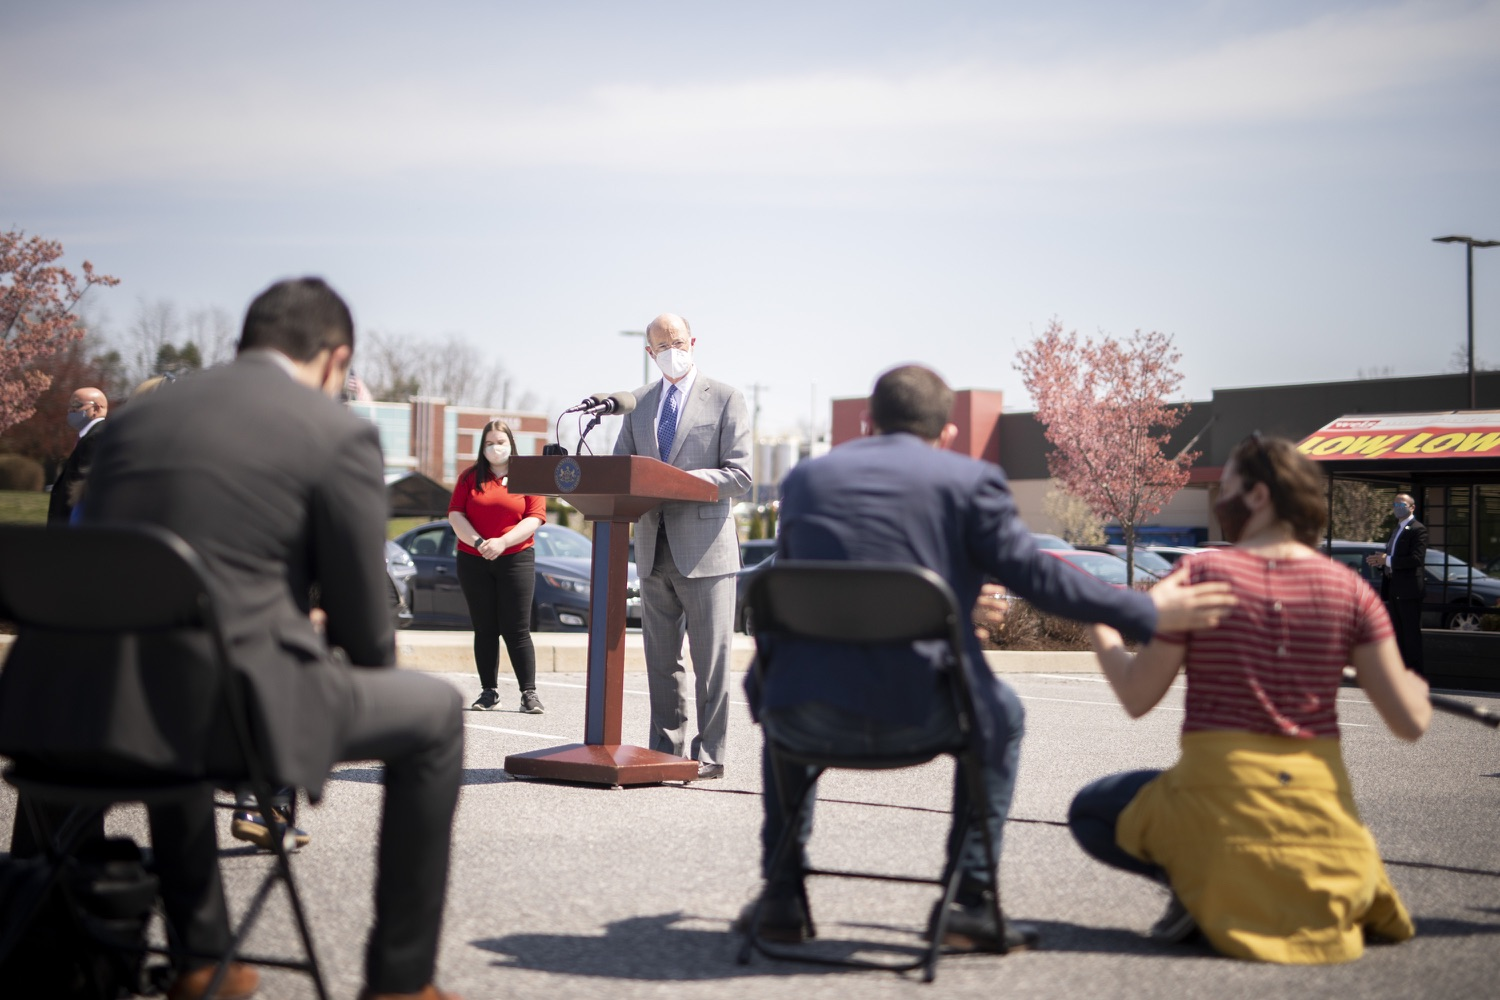 """<a href=""""https://filesource.wostreaming.net/commonwealthofpa/photo/18654_gov_vaccineeligibility_dz_018.jpg"""" target=""""_blank"""">⇣Download Photo<br></a>Pennsylvania Governor Tom Wolf speaking to the press.  Gov. Tom Wolf visited Weis Markets in Enola, Cumberland County, to recognize the heroic efforts of Pennsylvania's grocery store workers, who are now eligible for the COVID-19 vaccine.  The governor expressed his gratitude to Pennsylvania's 180,000 grocery store workers, who suddenly became frontline workers as the state took critical steps to mitigate the spread of COVID-19. Grocery stores were deemed life-sustaining businesses, and these employees put their lives at risk to ensure their stores remained open to the public. APRIL 06, 2021 - ENOLA, PA.."""